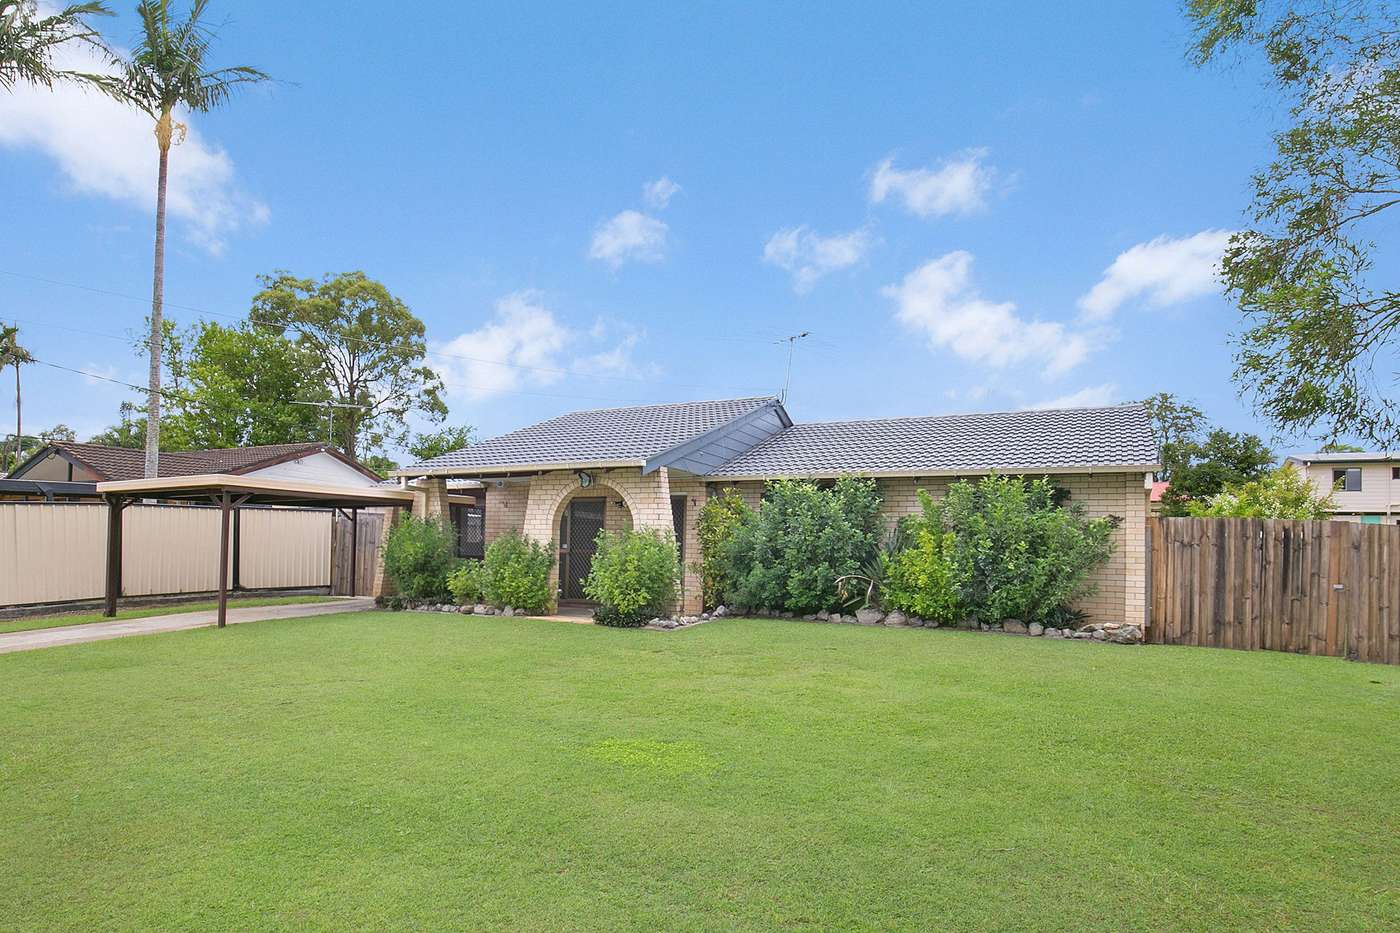 Main view of Homely house listing, 17 Anders Street, Slacks Creek, QLD 4127